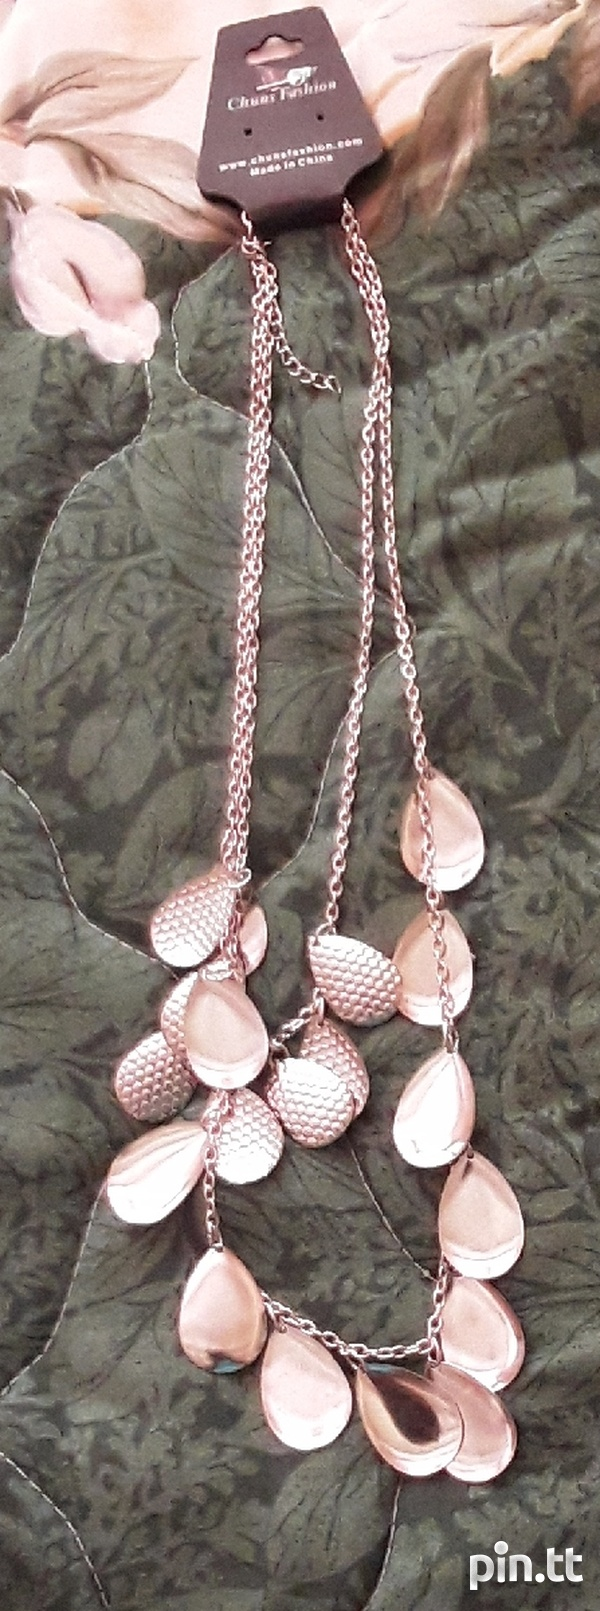 Silver Necklaces Costume Jewellery-4